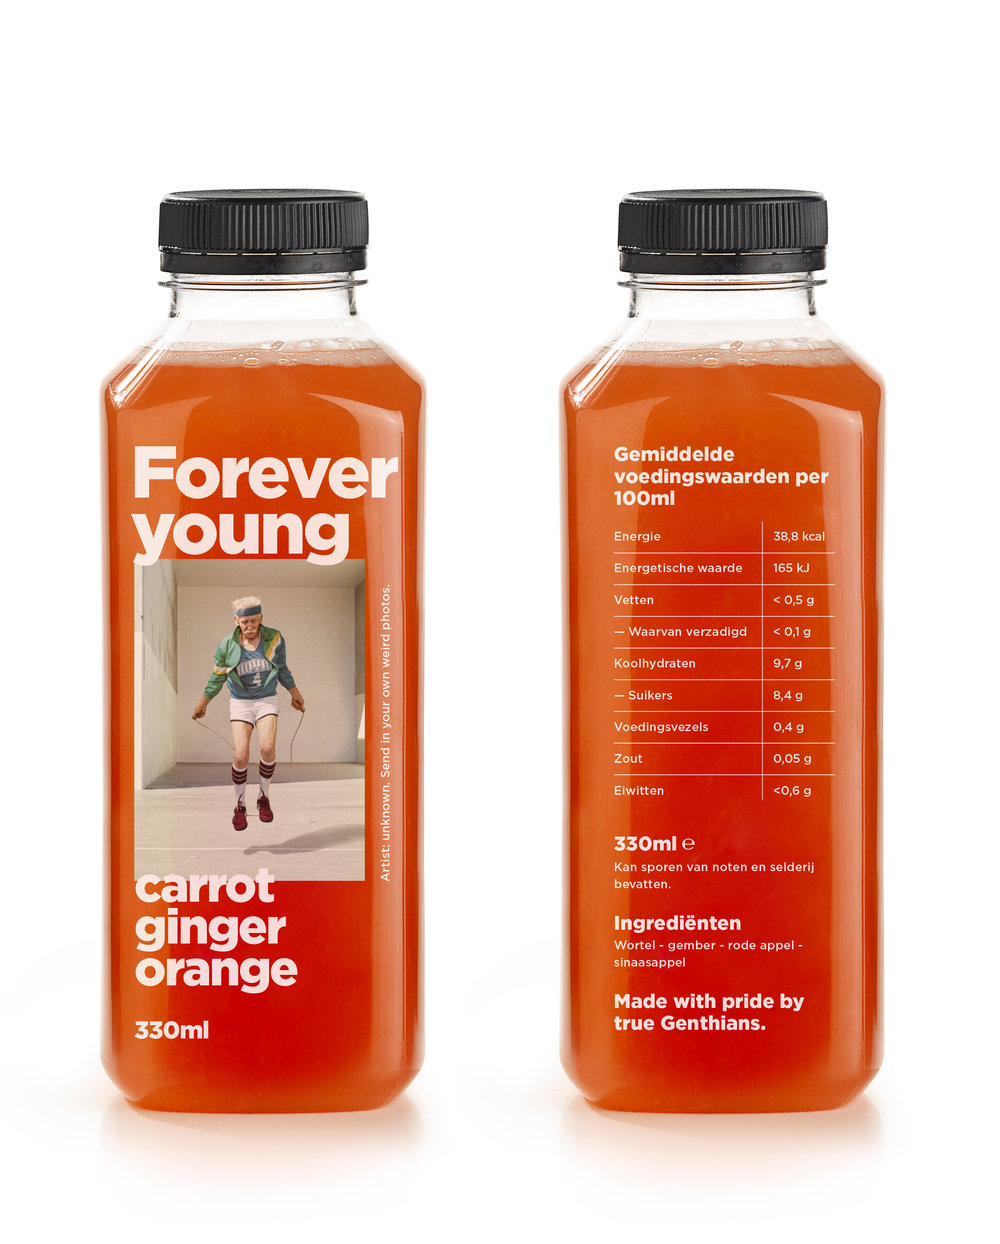 FOREVER YOUNG - Carotte / Ginger / Red apple / orange- This orange brew pimps your metabolism and slows down the aging process. Take a sel e afterwards.